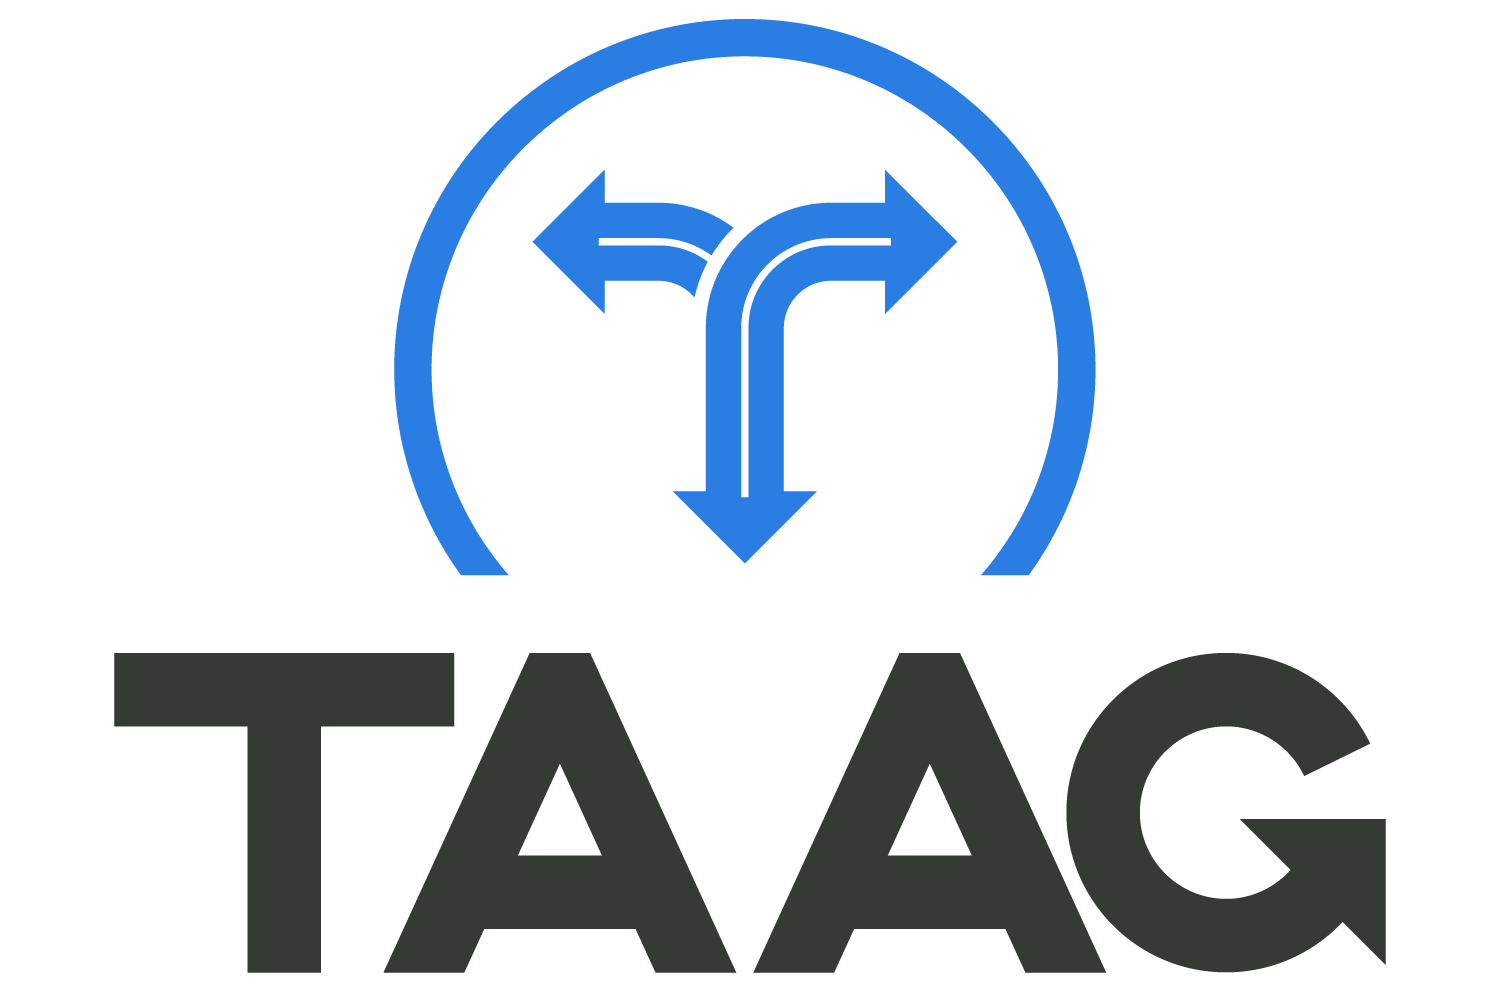 Transit Action Alliance of Guelph (TAAG)